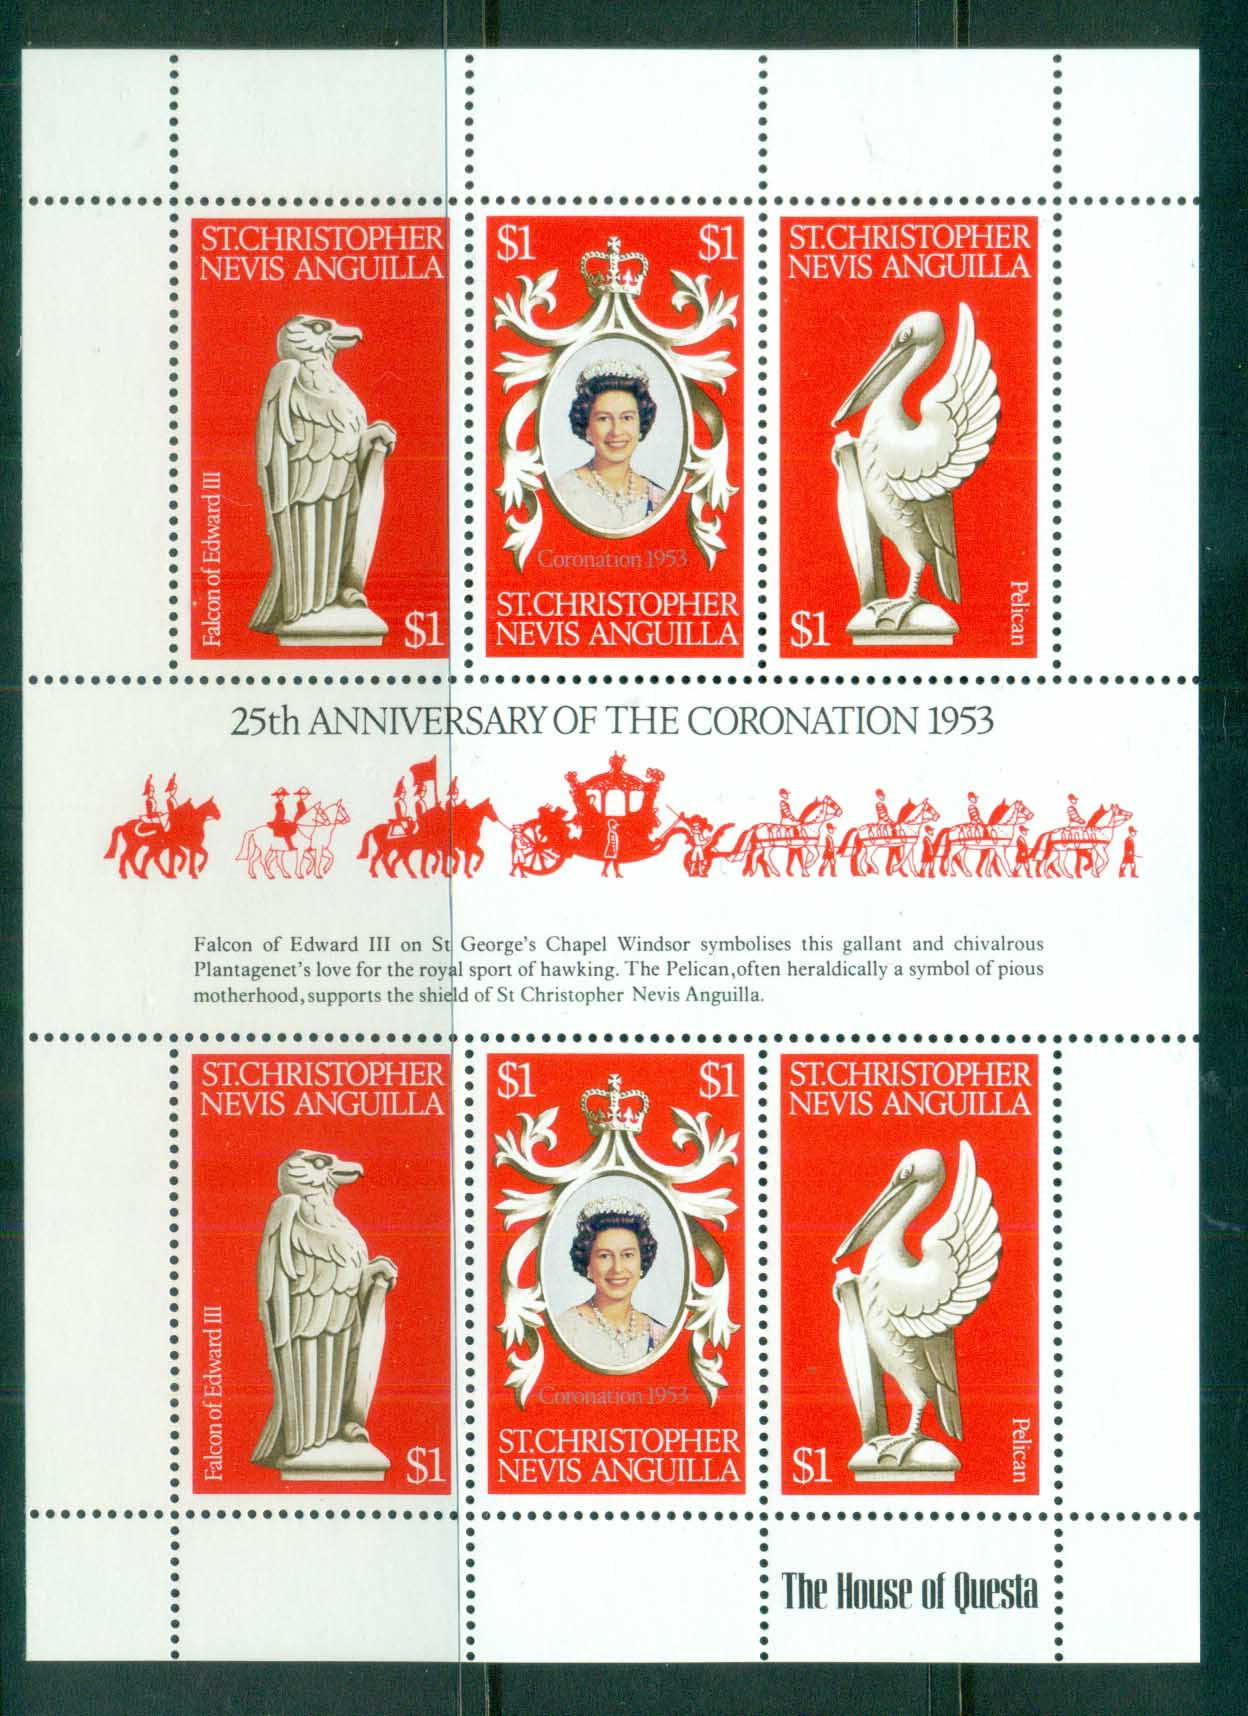 St Christopher Nevis Anguilla 1978 QEII Coronation, 25th Anniversary , Royalty MS MUH